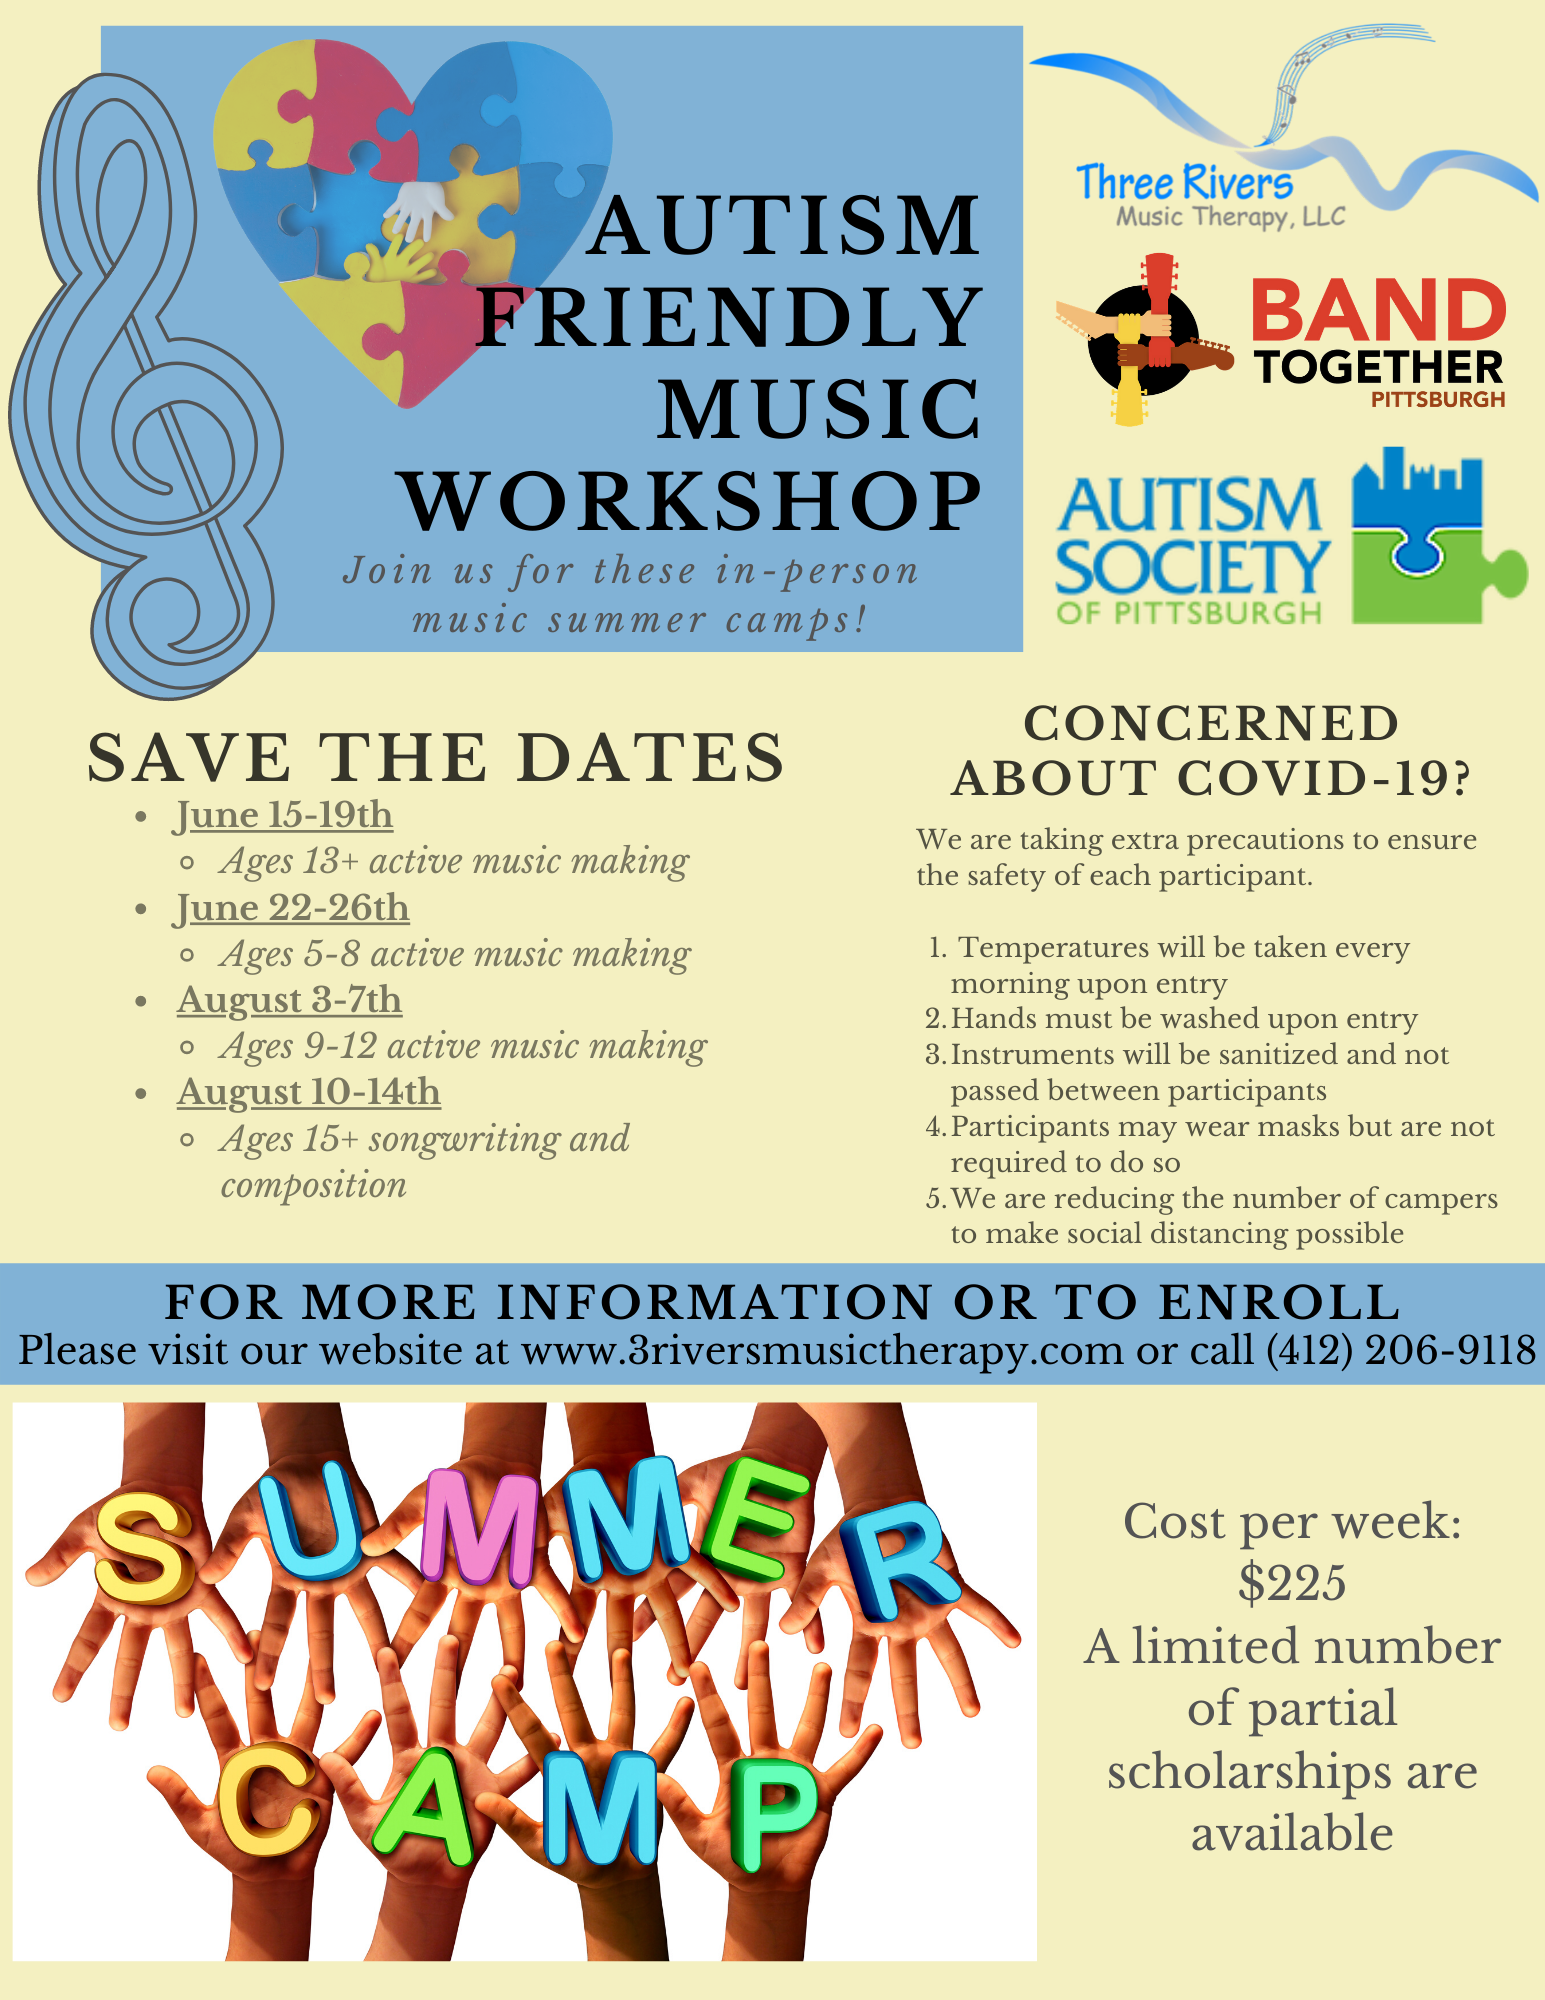 Autism Friendly Music Workshop